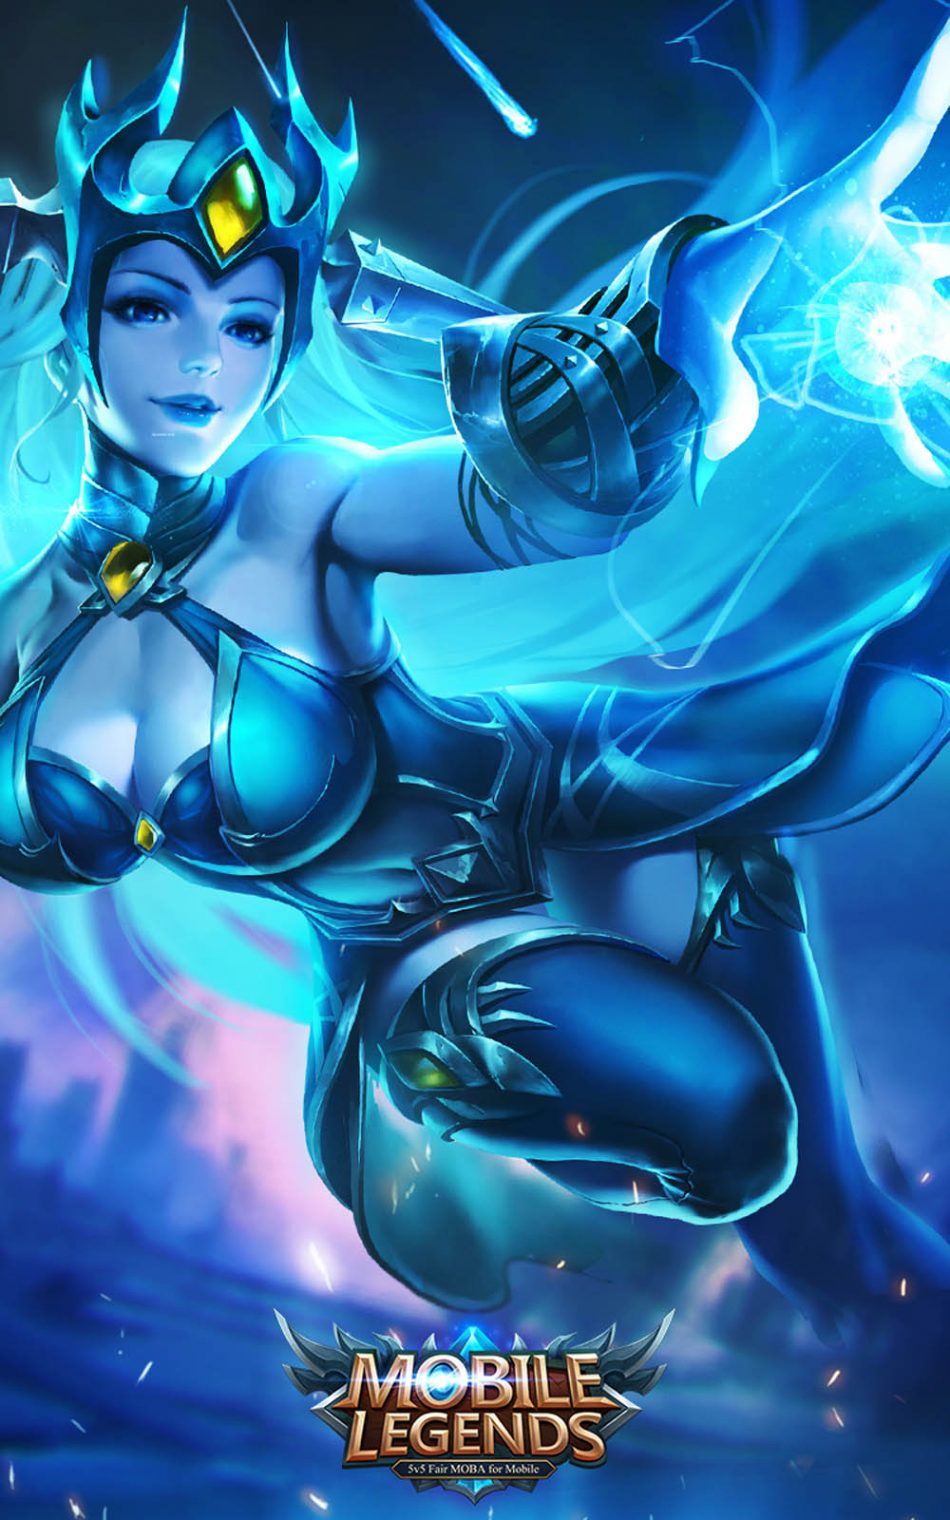 Download Eudora Mobile Legends Hero Free Pure 4k Ultra Hd